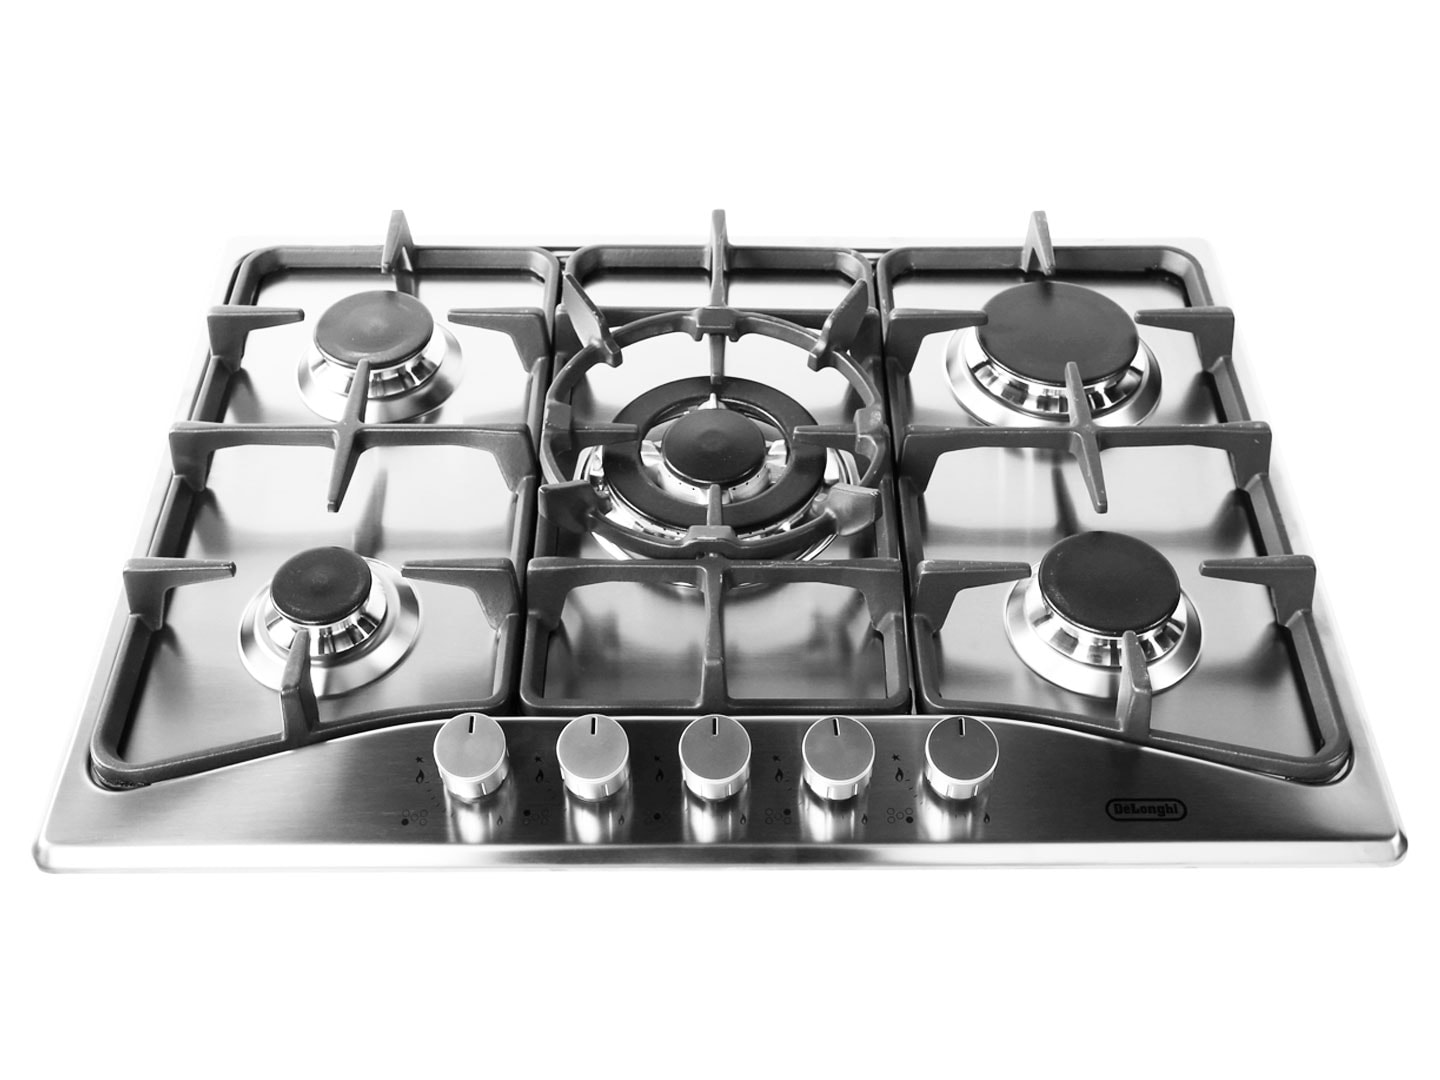 Clearance Stock: Gas Cooktop with Wok Burner - 70cm - DEGH70W